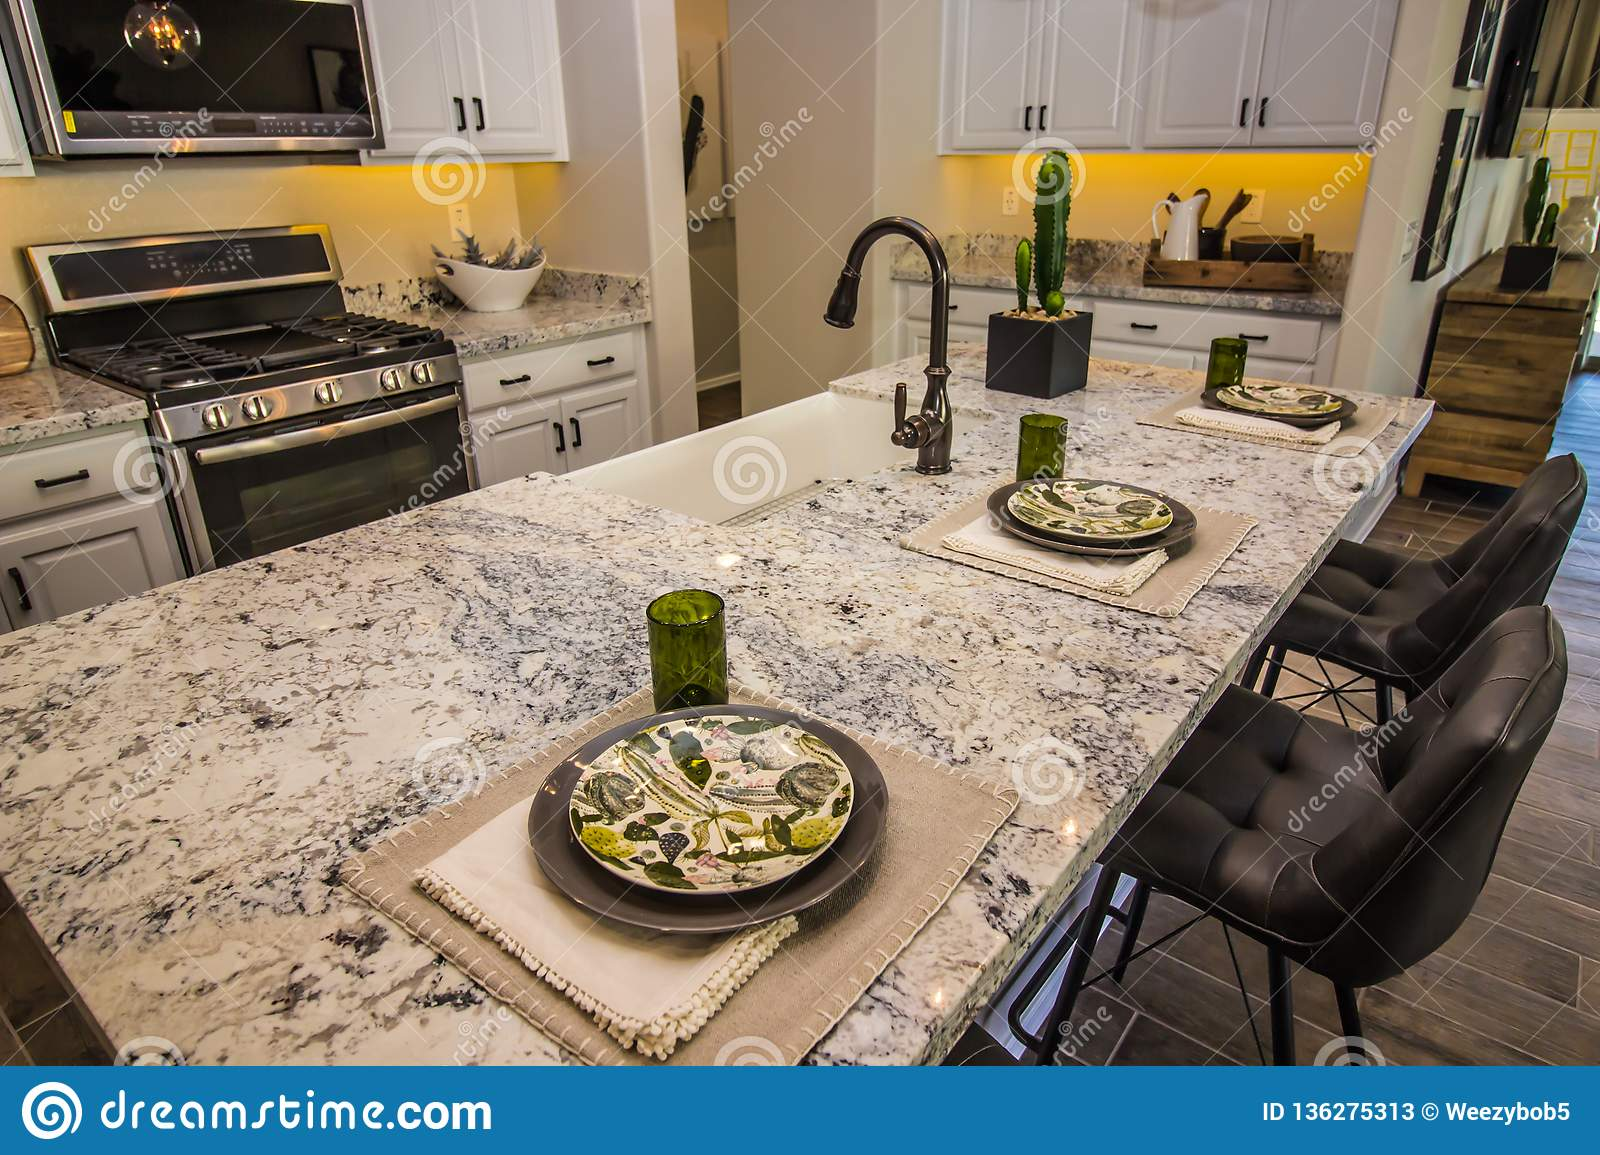 Kitchen Island With Granite Counter Top And Place Settings